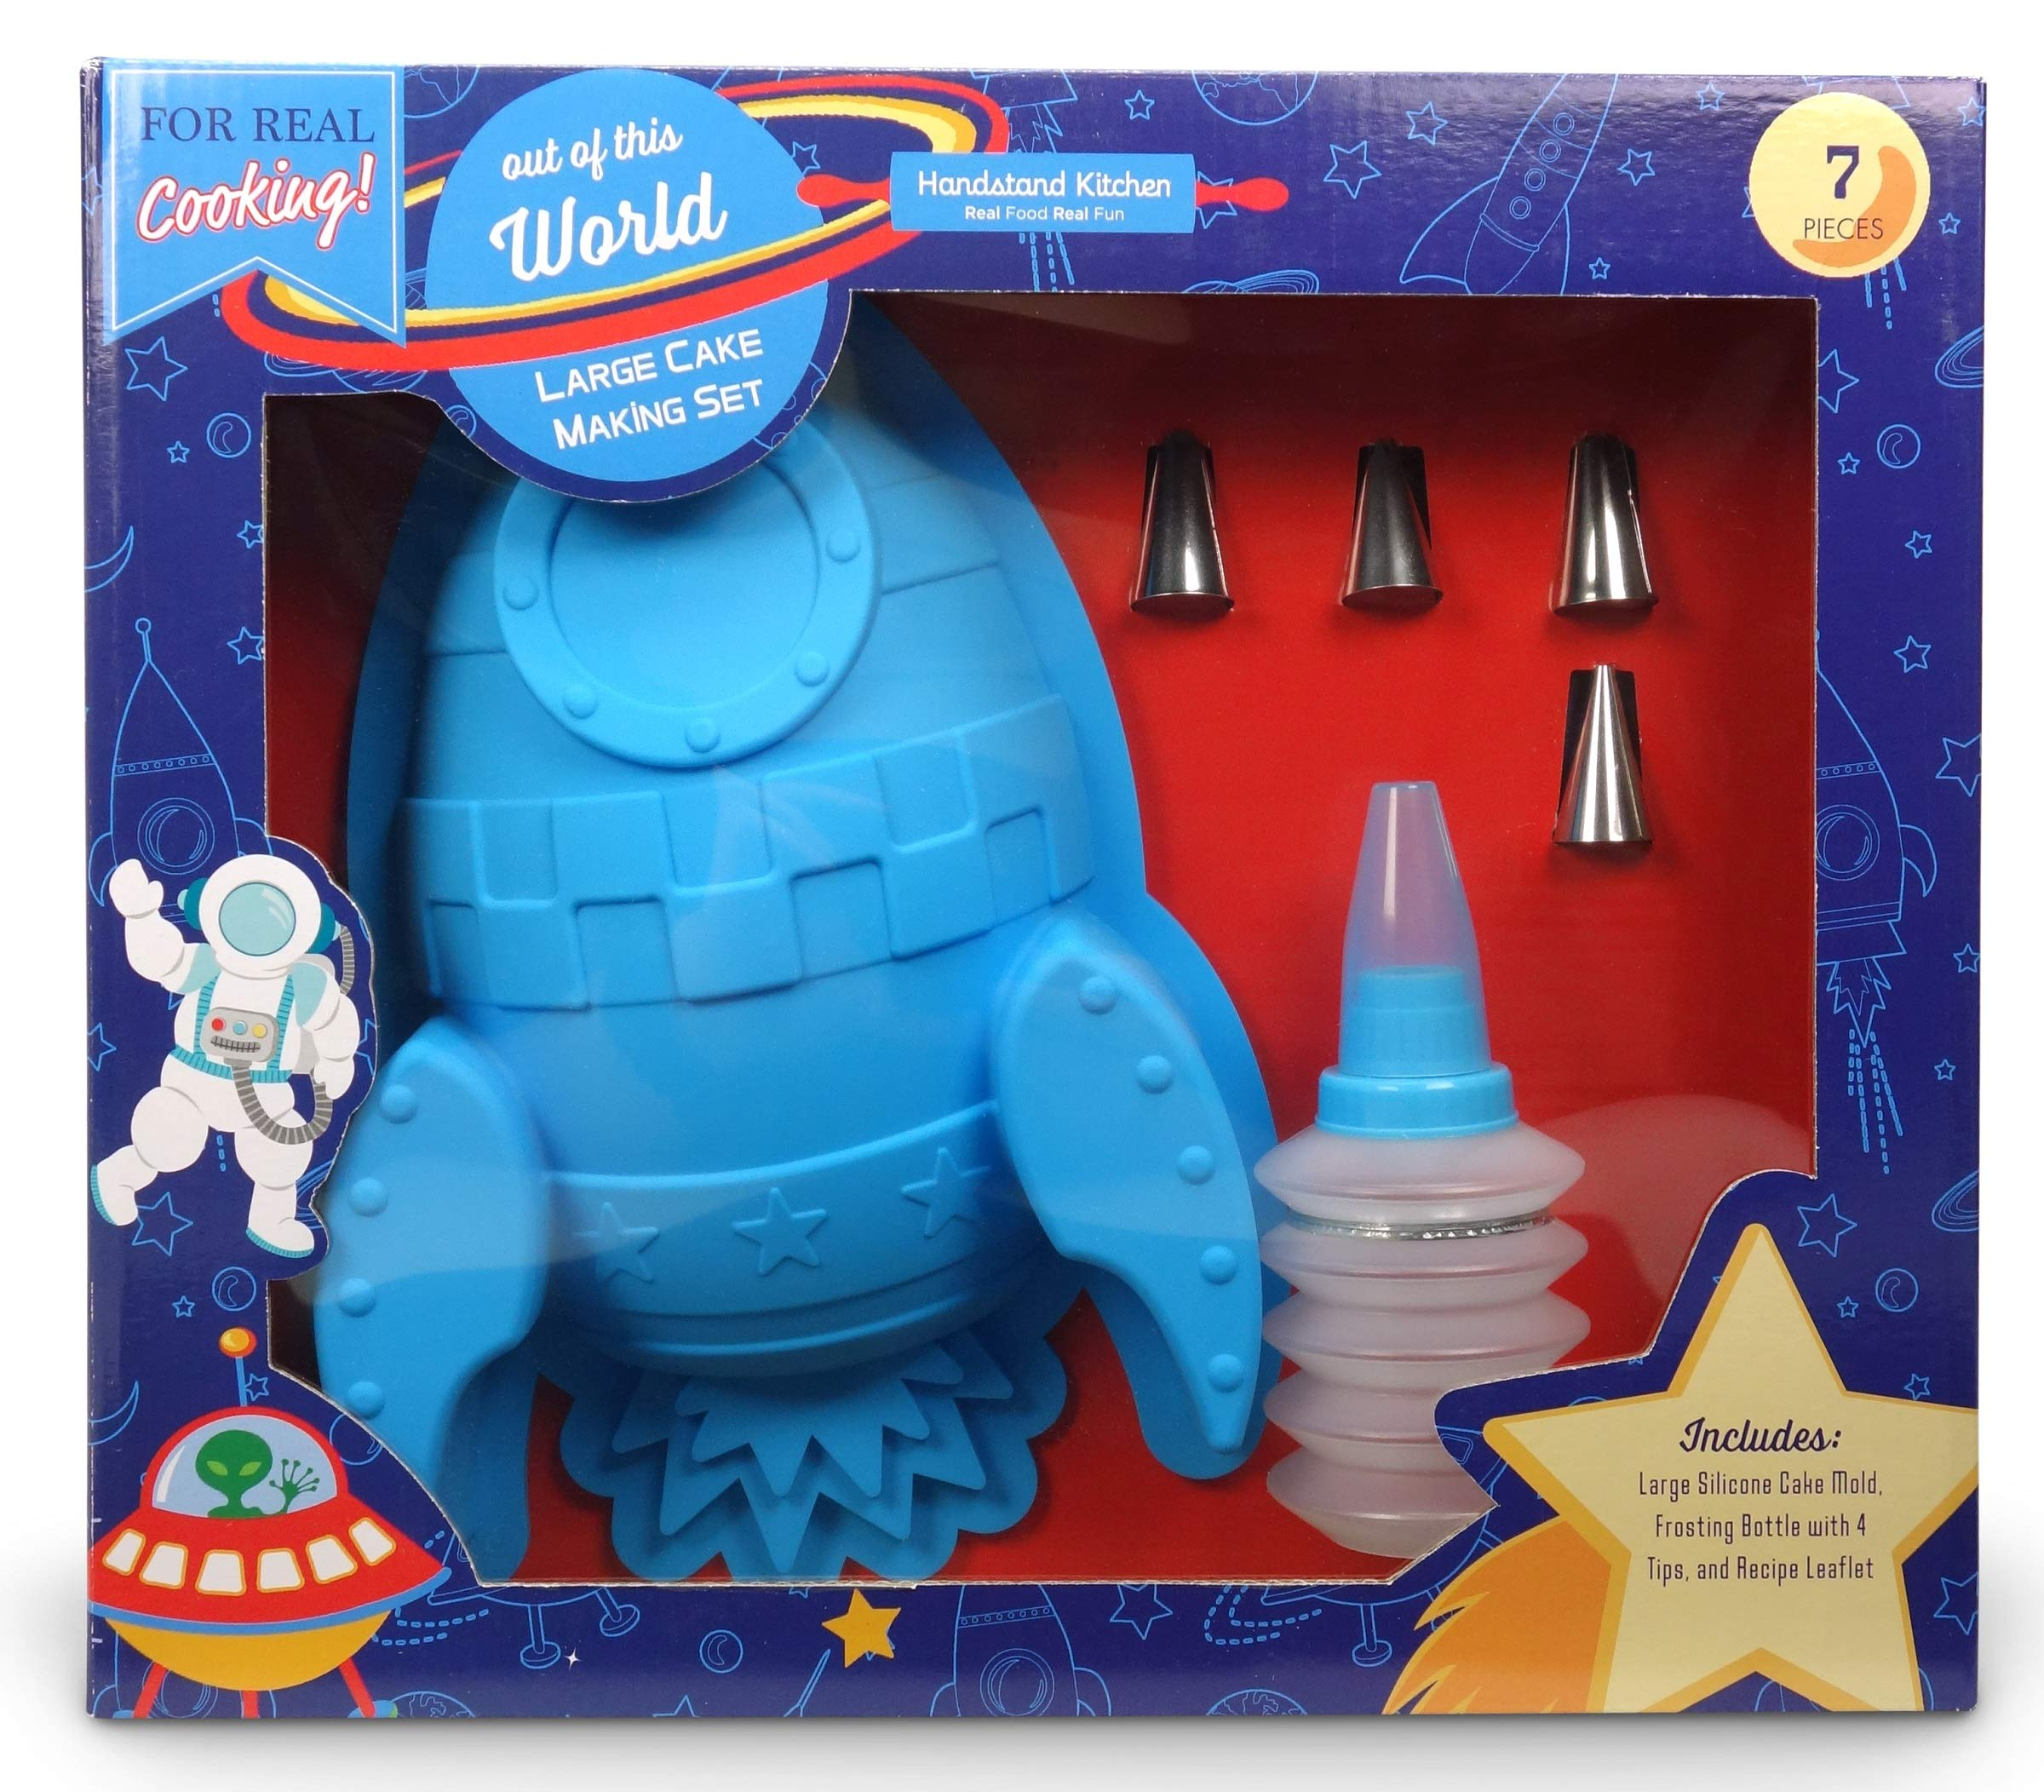 Handstand Kitchen Out of this World 7-piece Real Rocket Shaped Cake Baking Set with Recipes for Kids by Handstand Kitchen (Image #1)